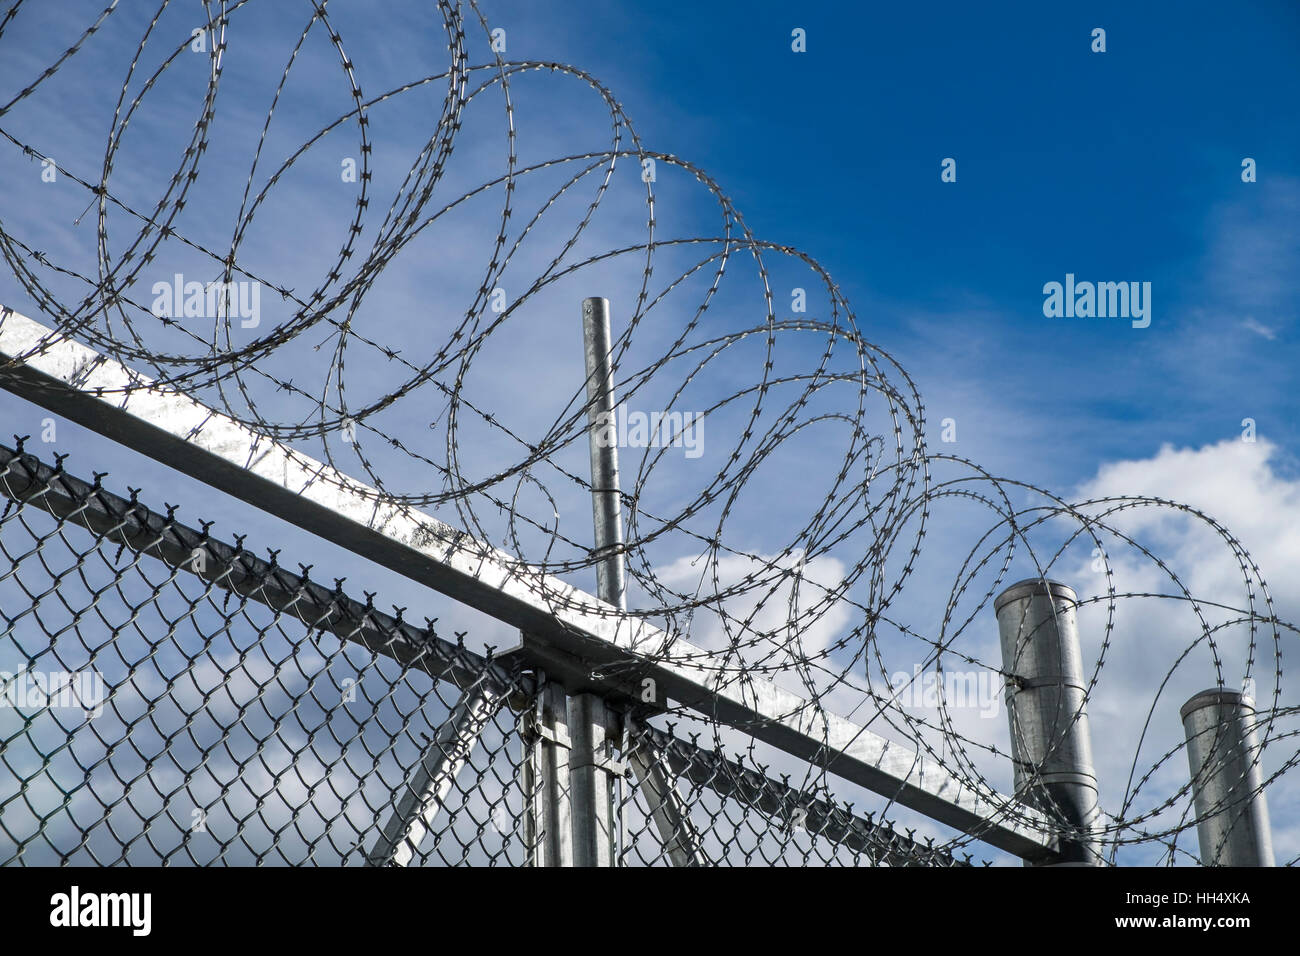 Razor sharp barbed wire tops a chained linked fence in a prison yard ...